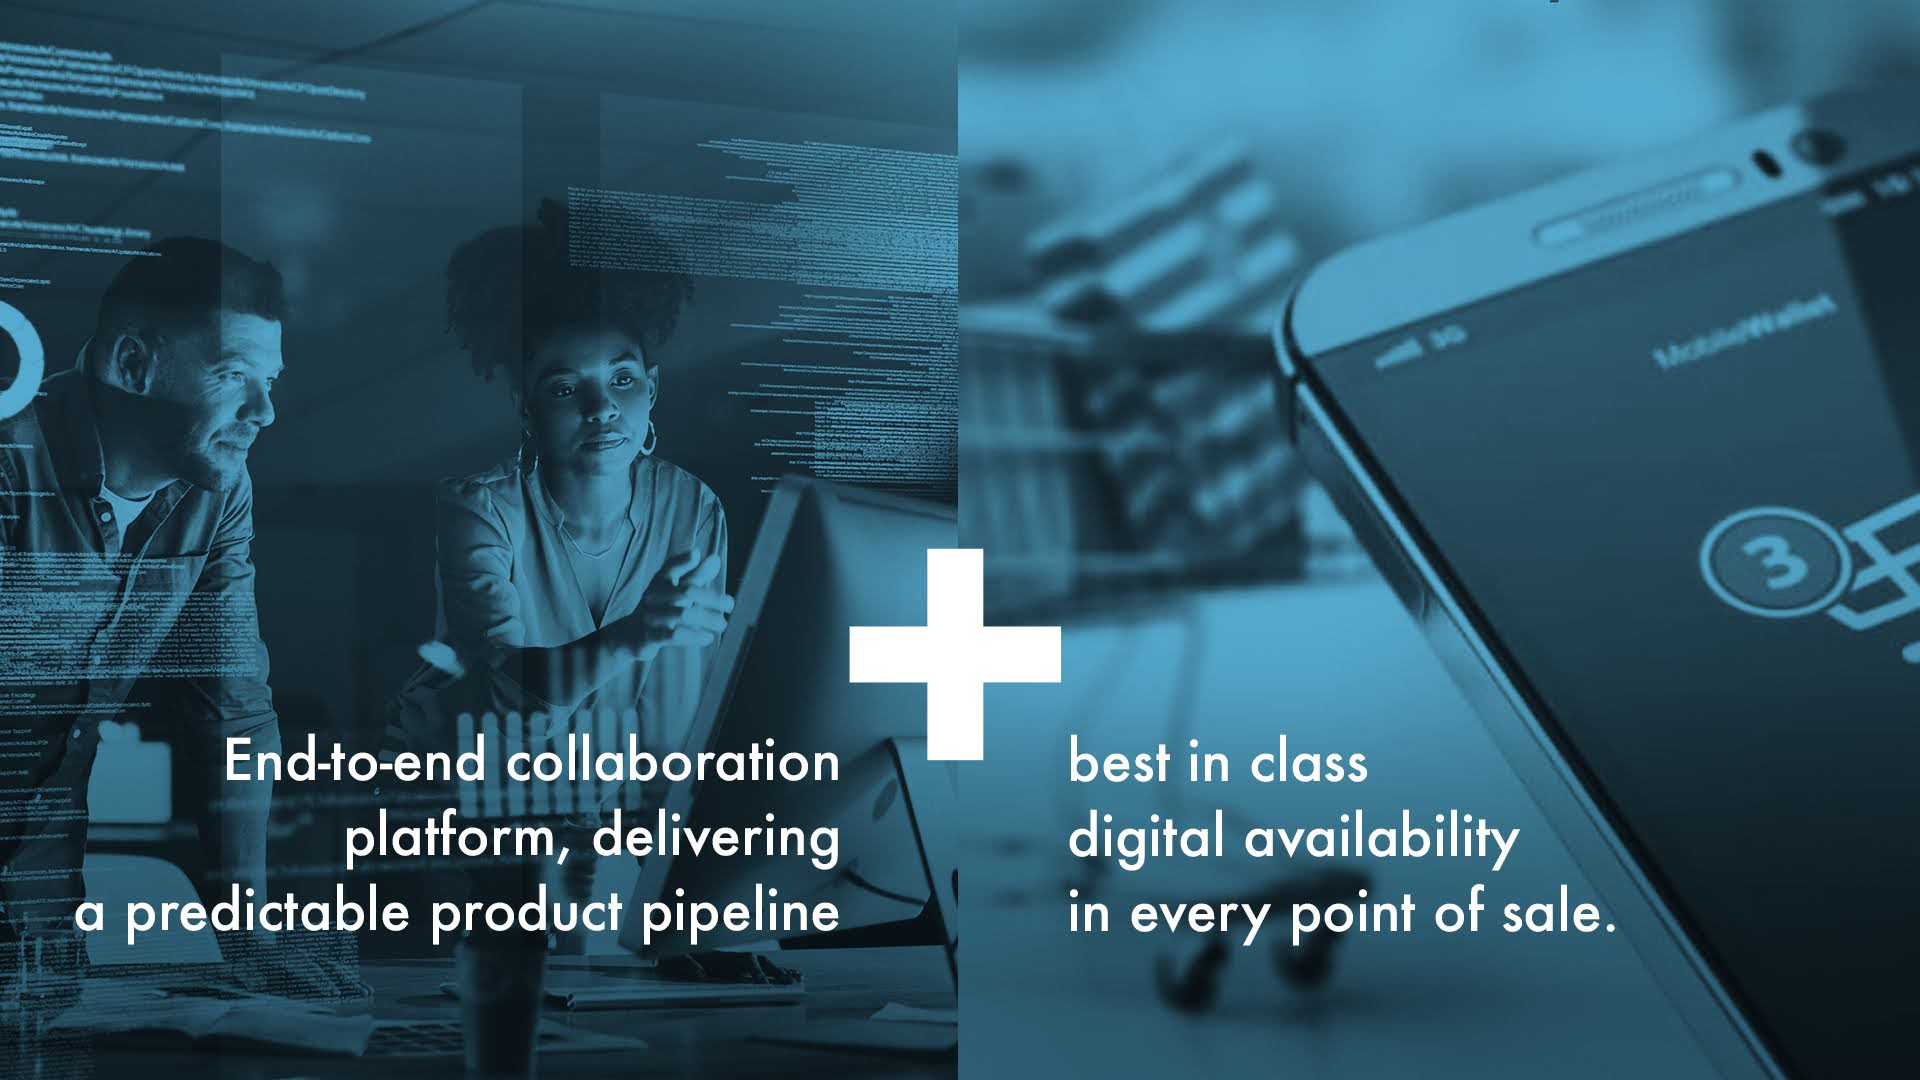 SyncForce-predictable-product-pipeline-plus-digital-availability